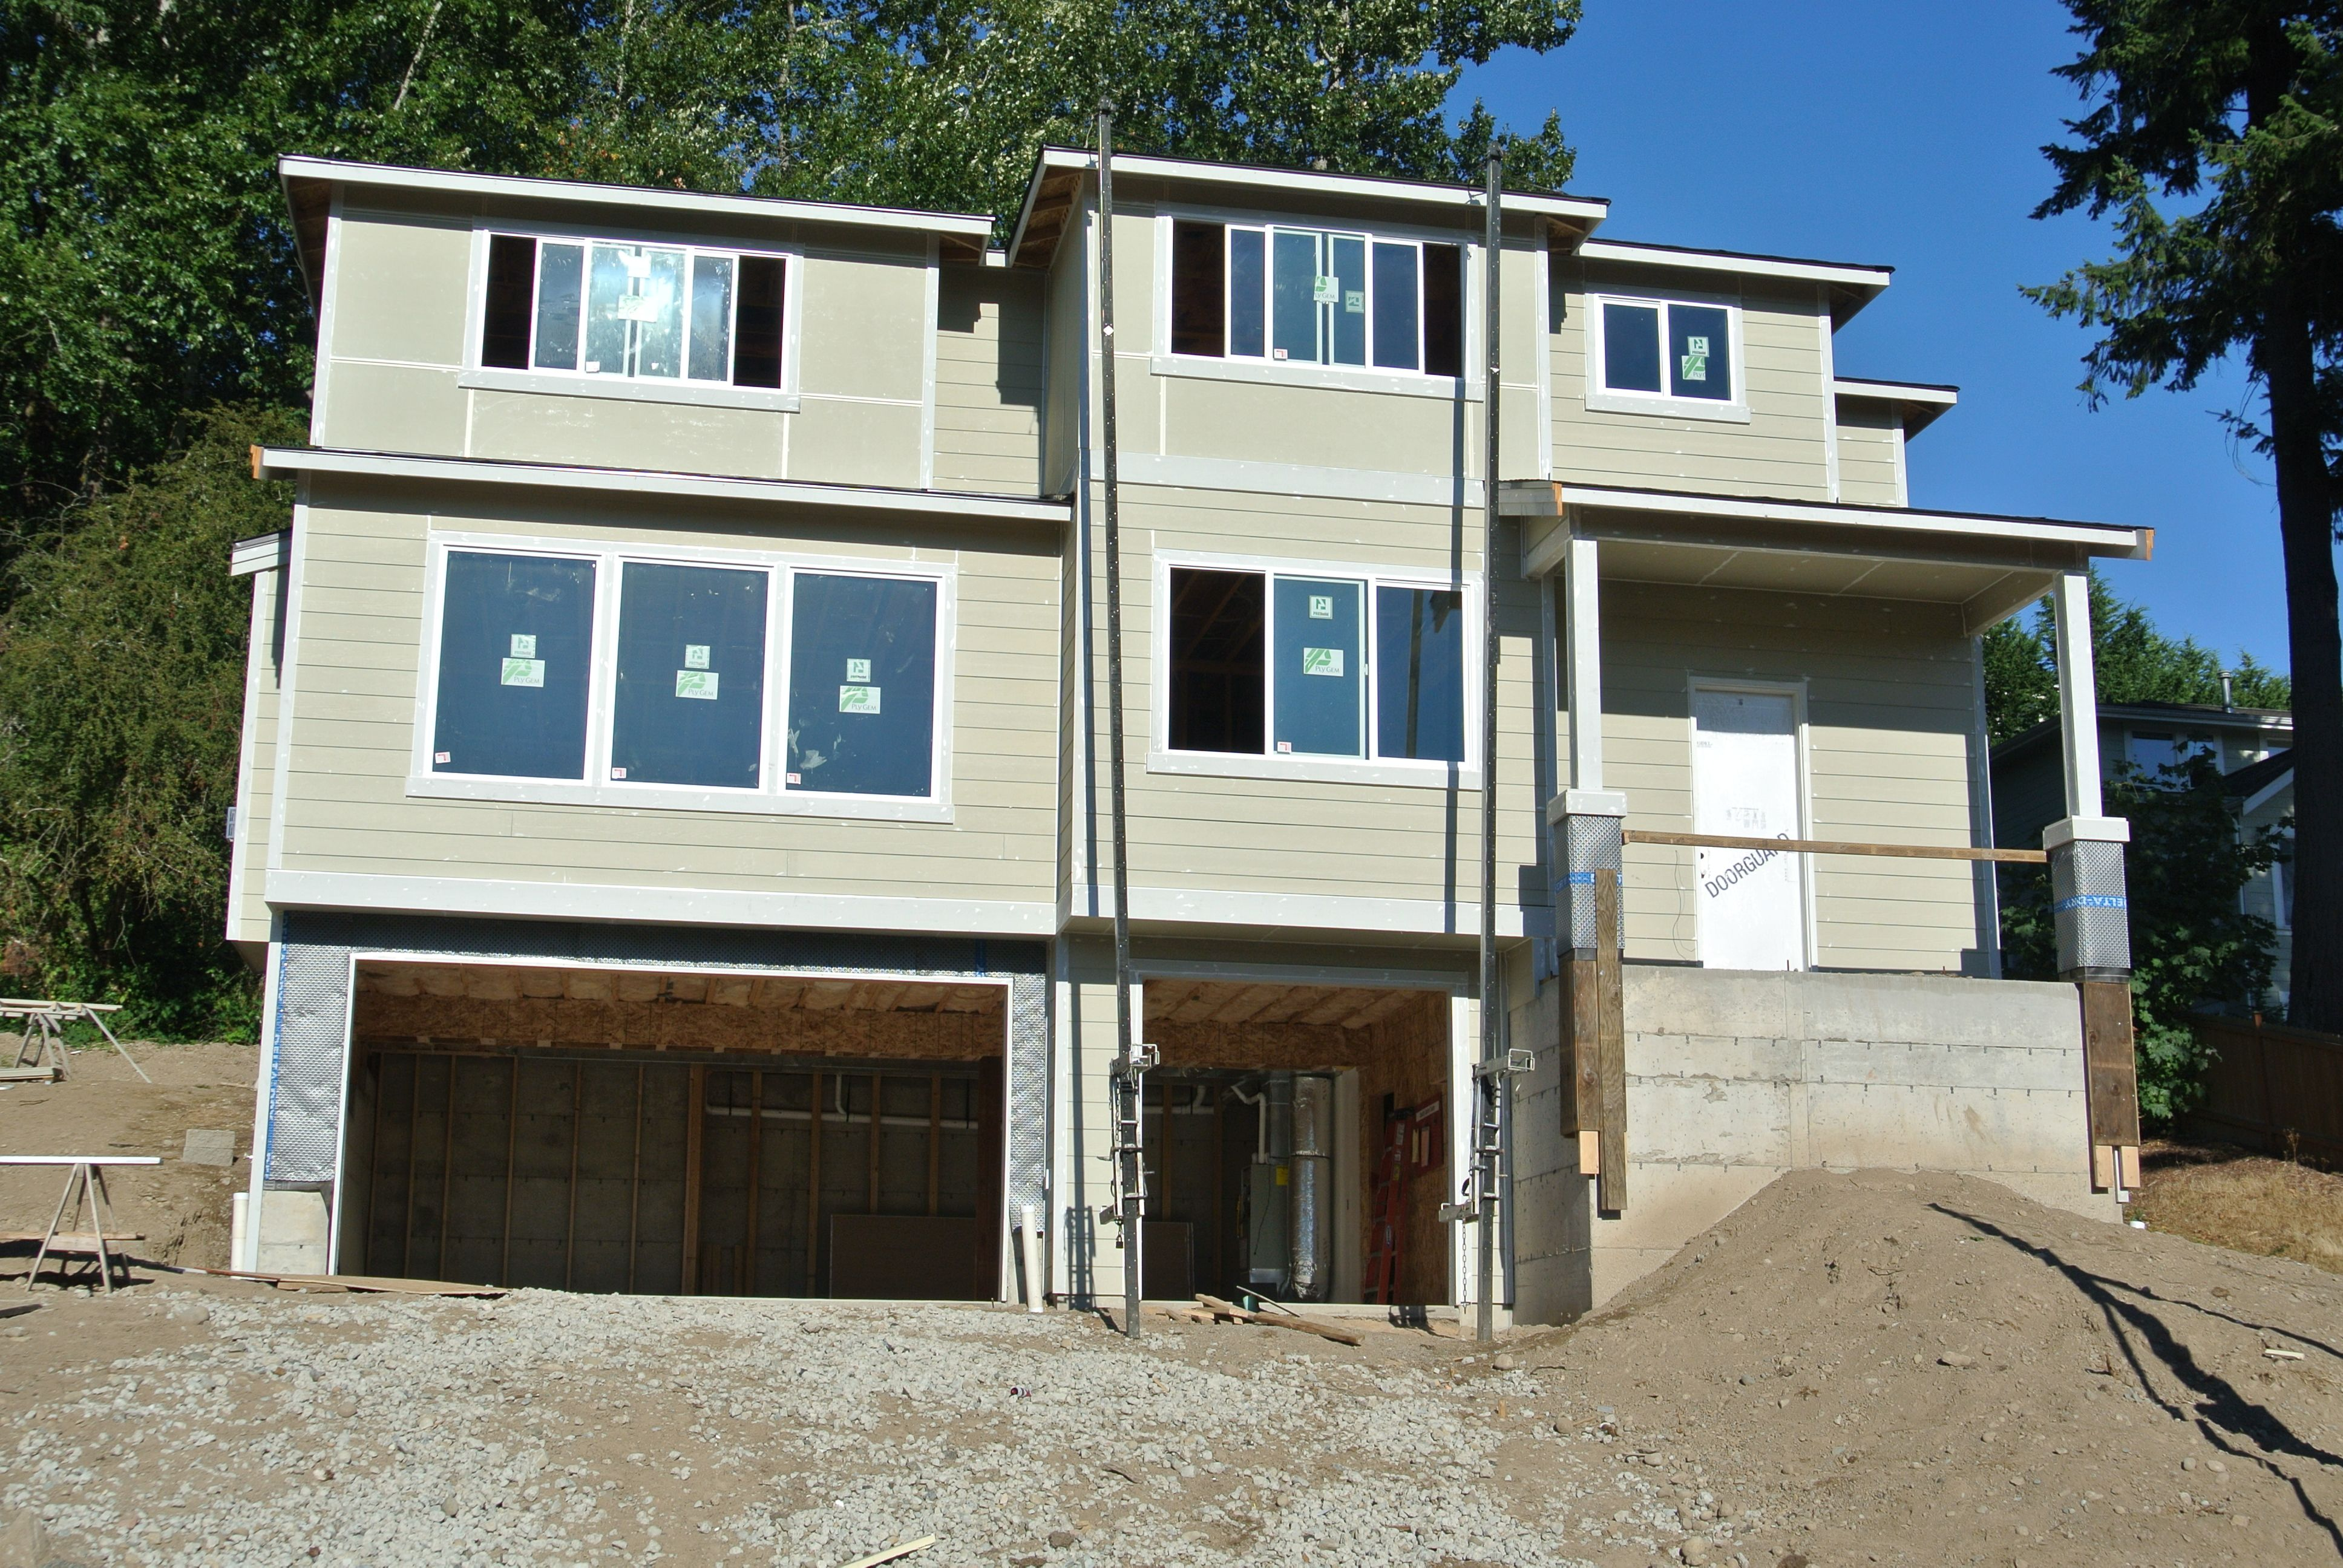 Canterbury at double eagle siding is completed this